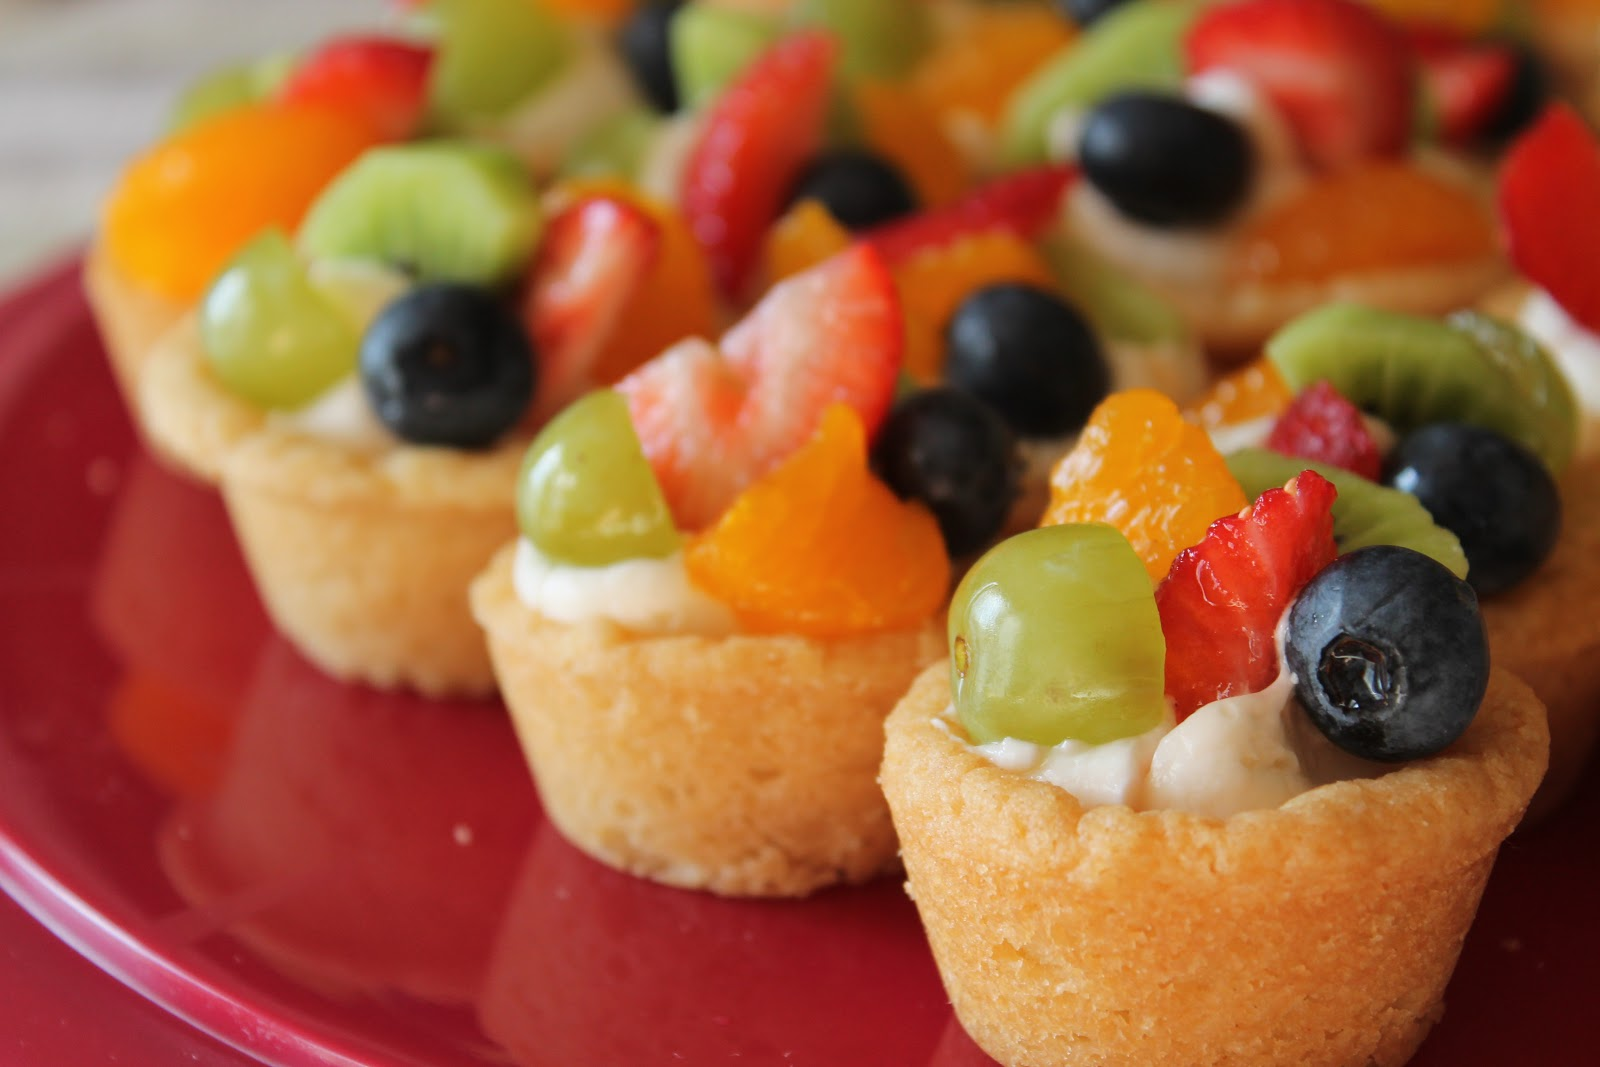 Recetas De Cocina Faciles Para Niños Postres Sawpinnedconquered Fruit Cookie Cups At The Pink Of